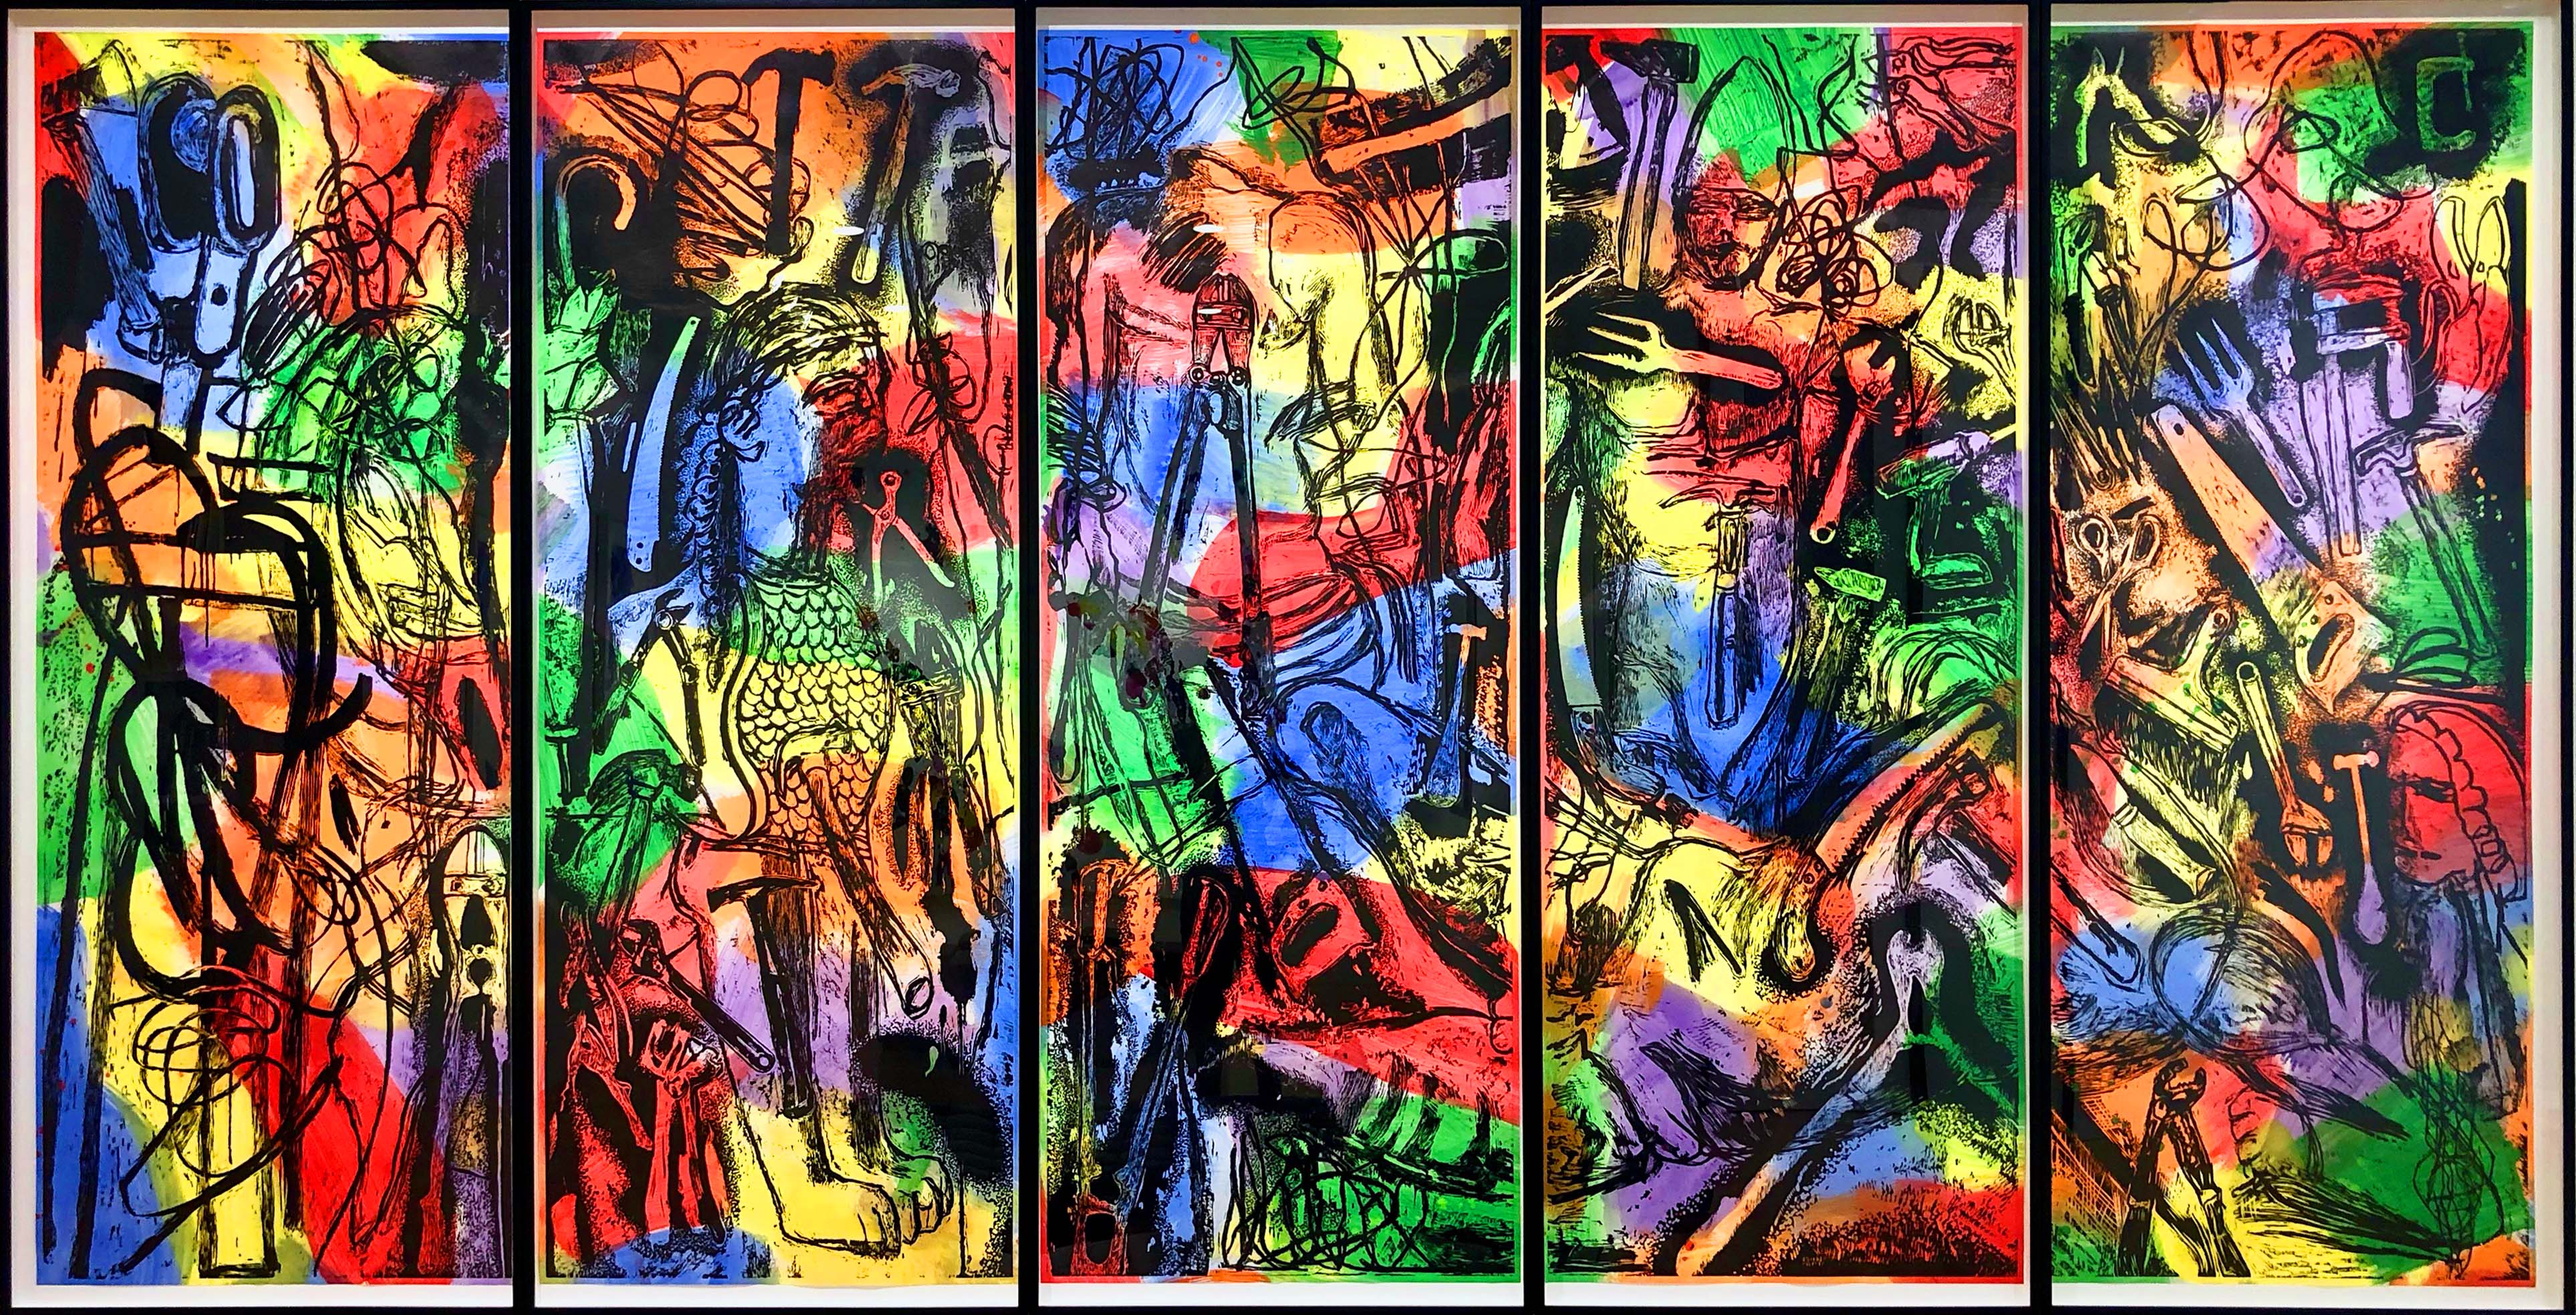 Brightly colored 5-panel print of tools and figures by Jim Dine